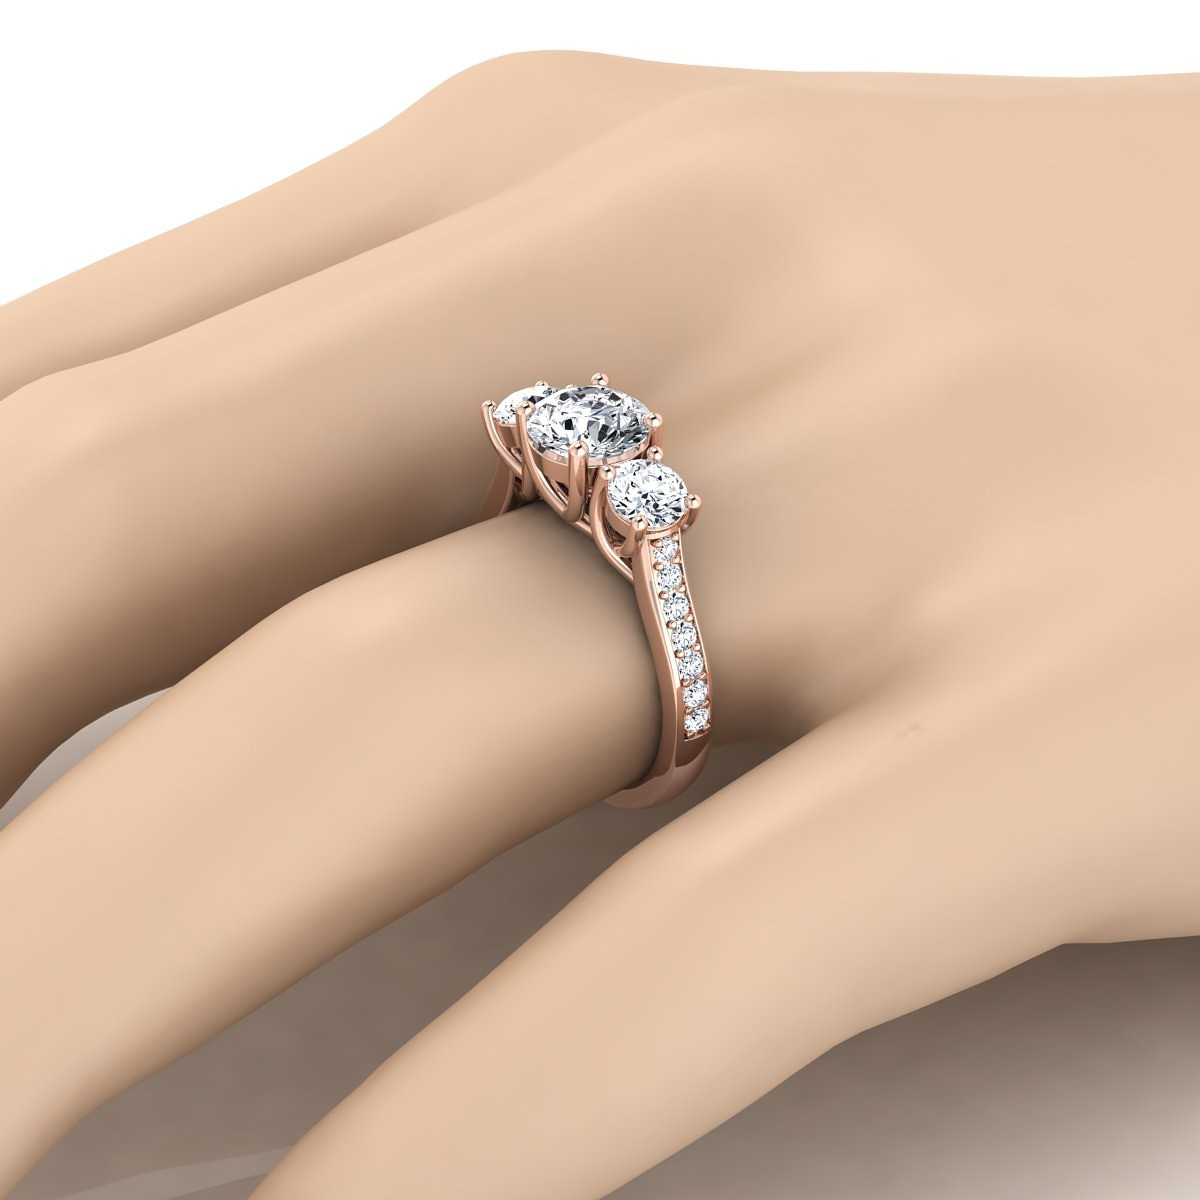 3 Stone Engagement Ring With Diamond Pave Shank In 14k Rose Gold (7/8 Ct.tw.)